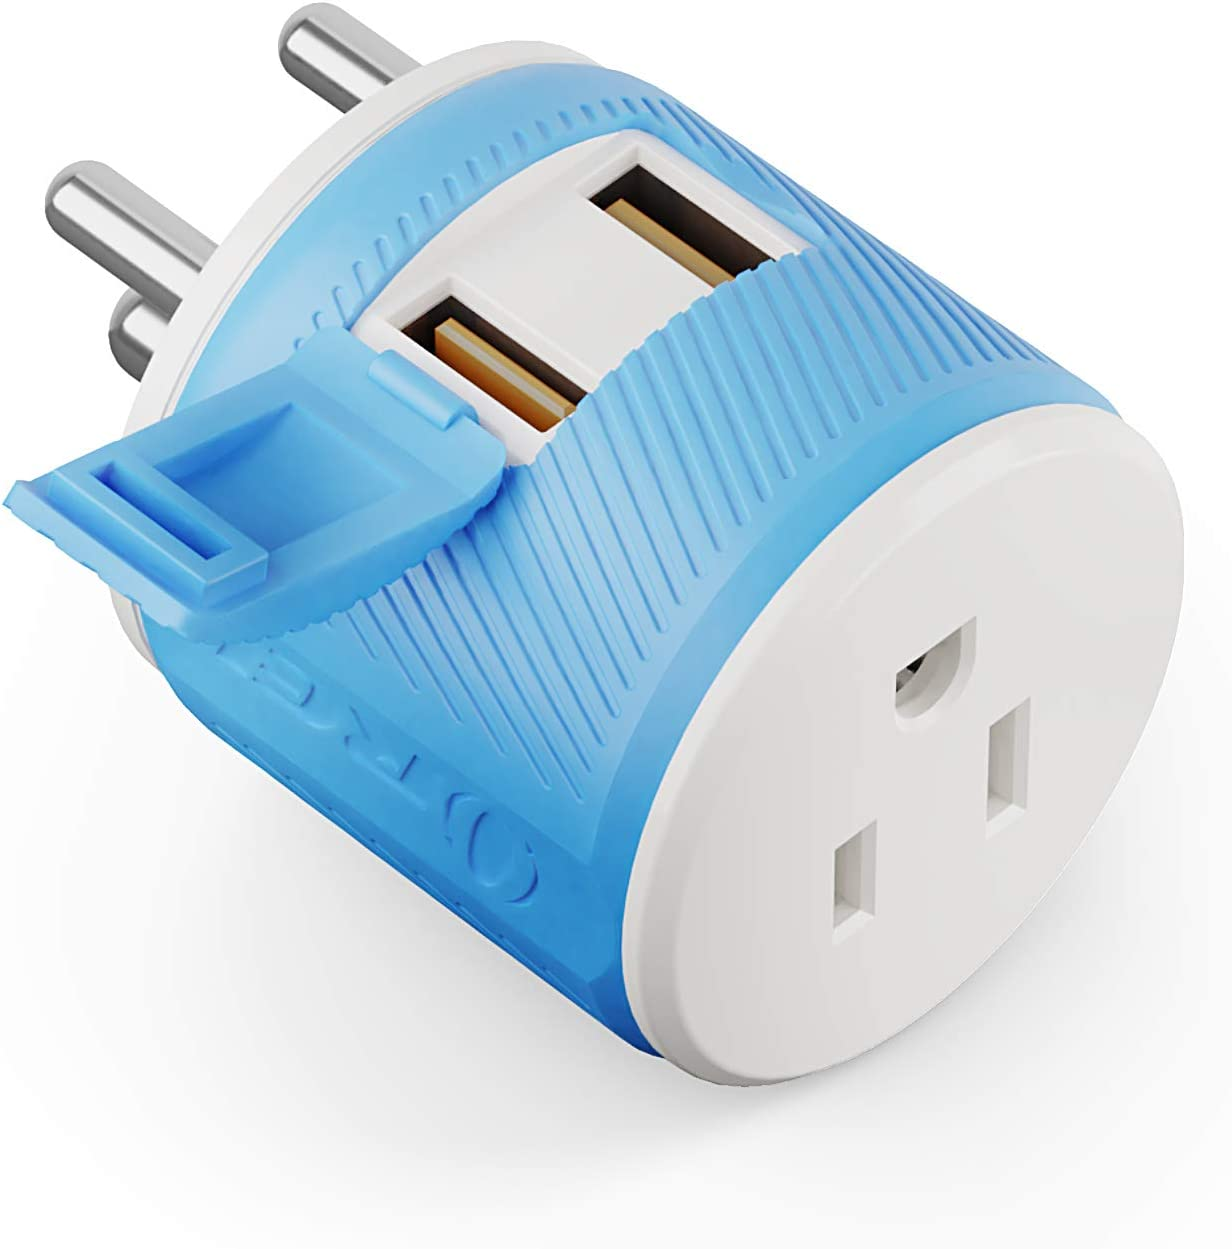 India, Nepal, Maldives Travel Plug Adapter by OREI with Dual USB - USA Input + Surge Protection - Type D (U2U-10), Will Work with Cell Phones, Camera, Laptop, Tablets, iPad, iPhone and More